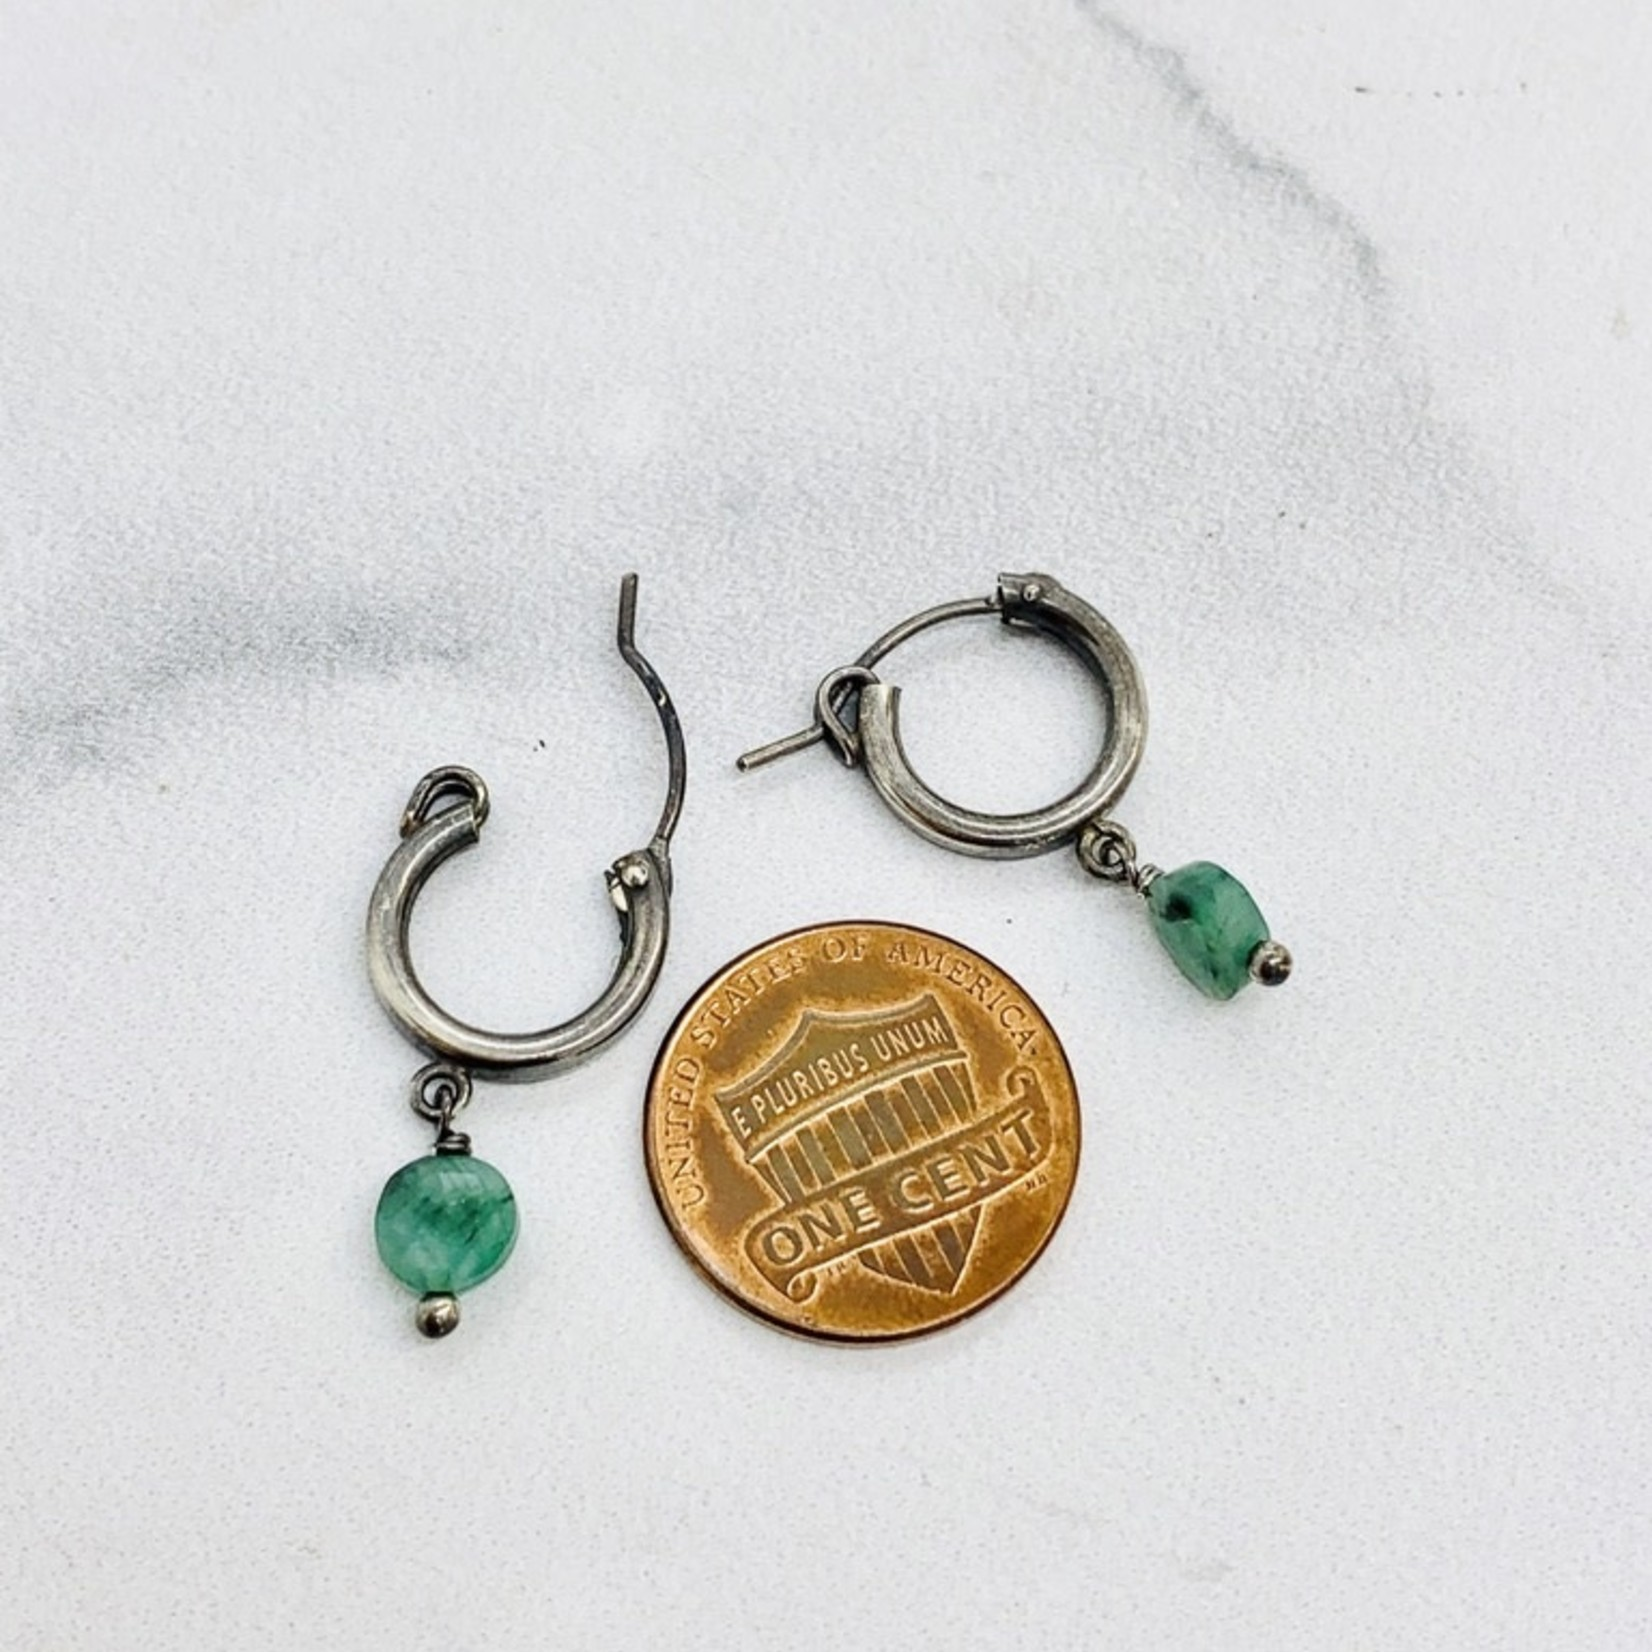 Handmade earrings with oxidized hoop, emerald coin